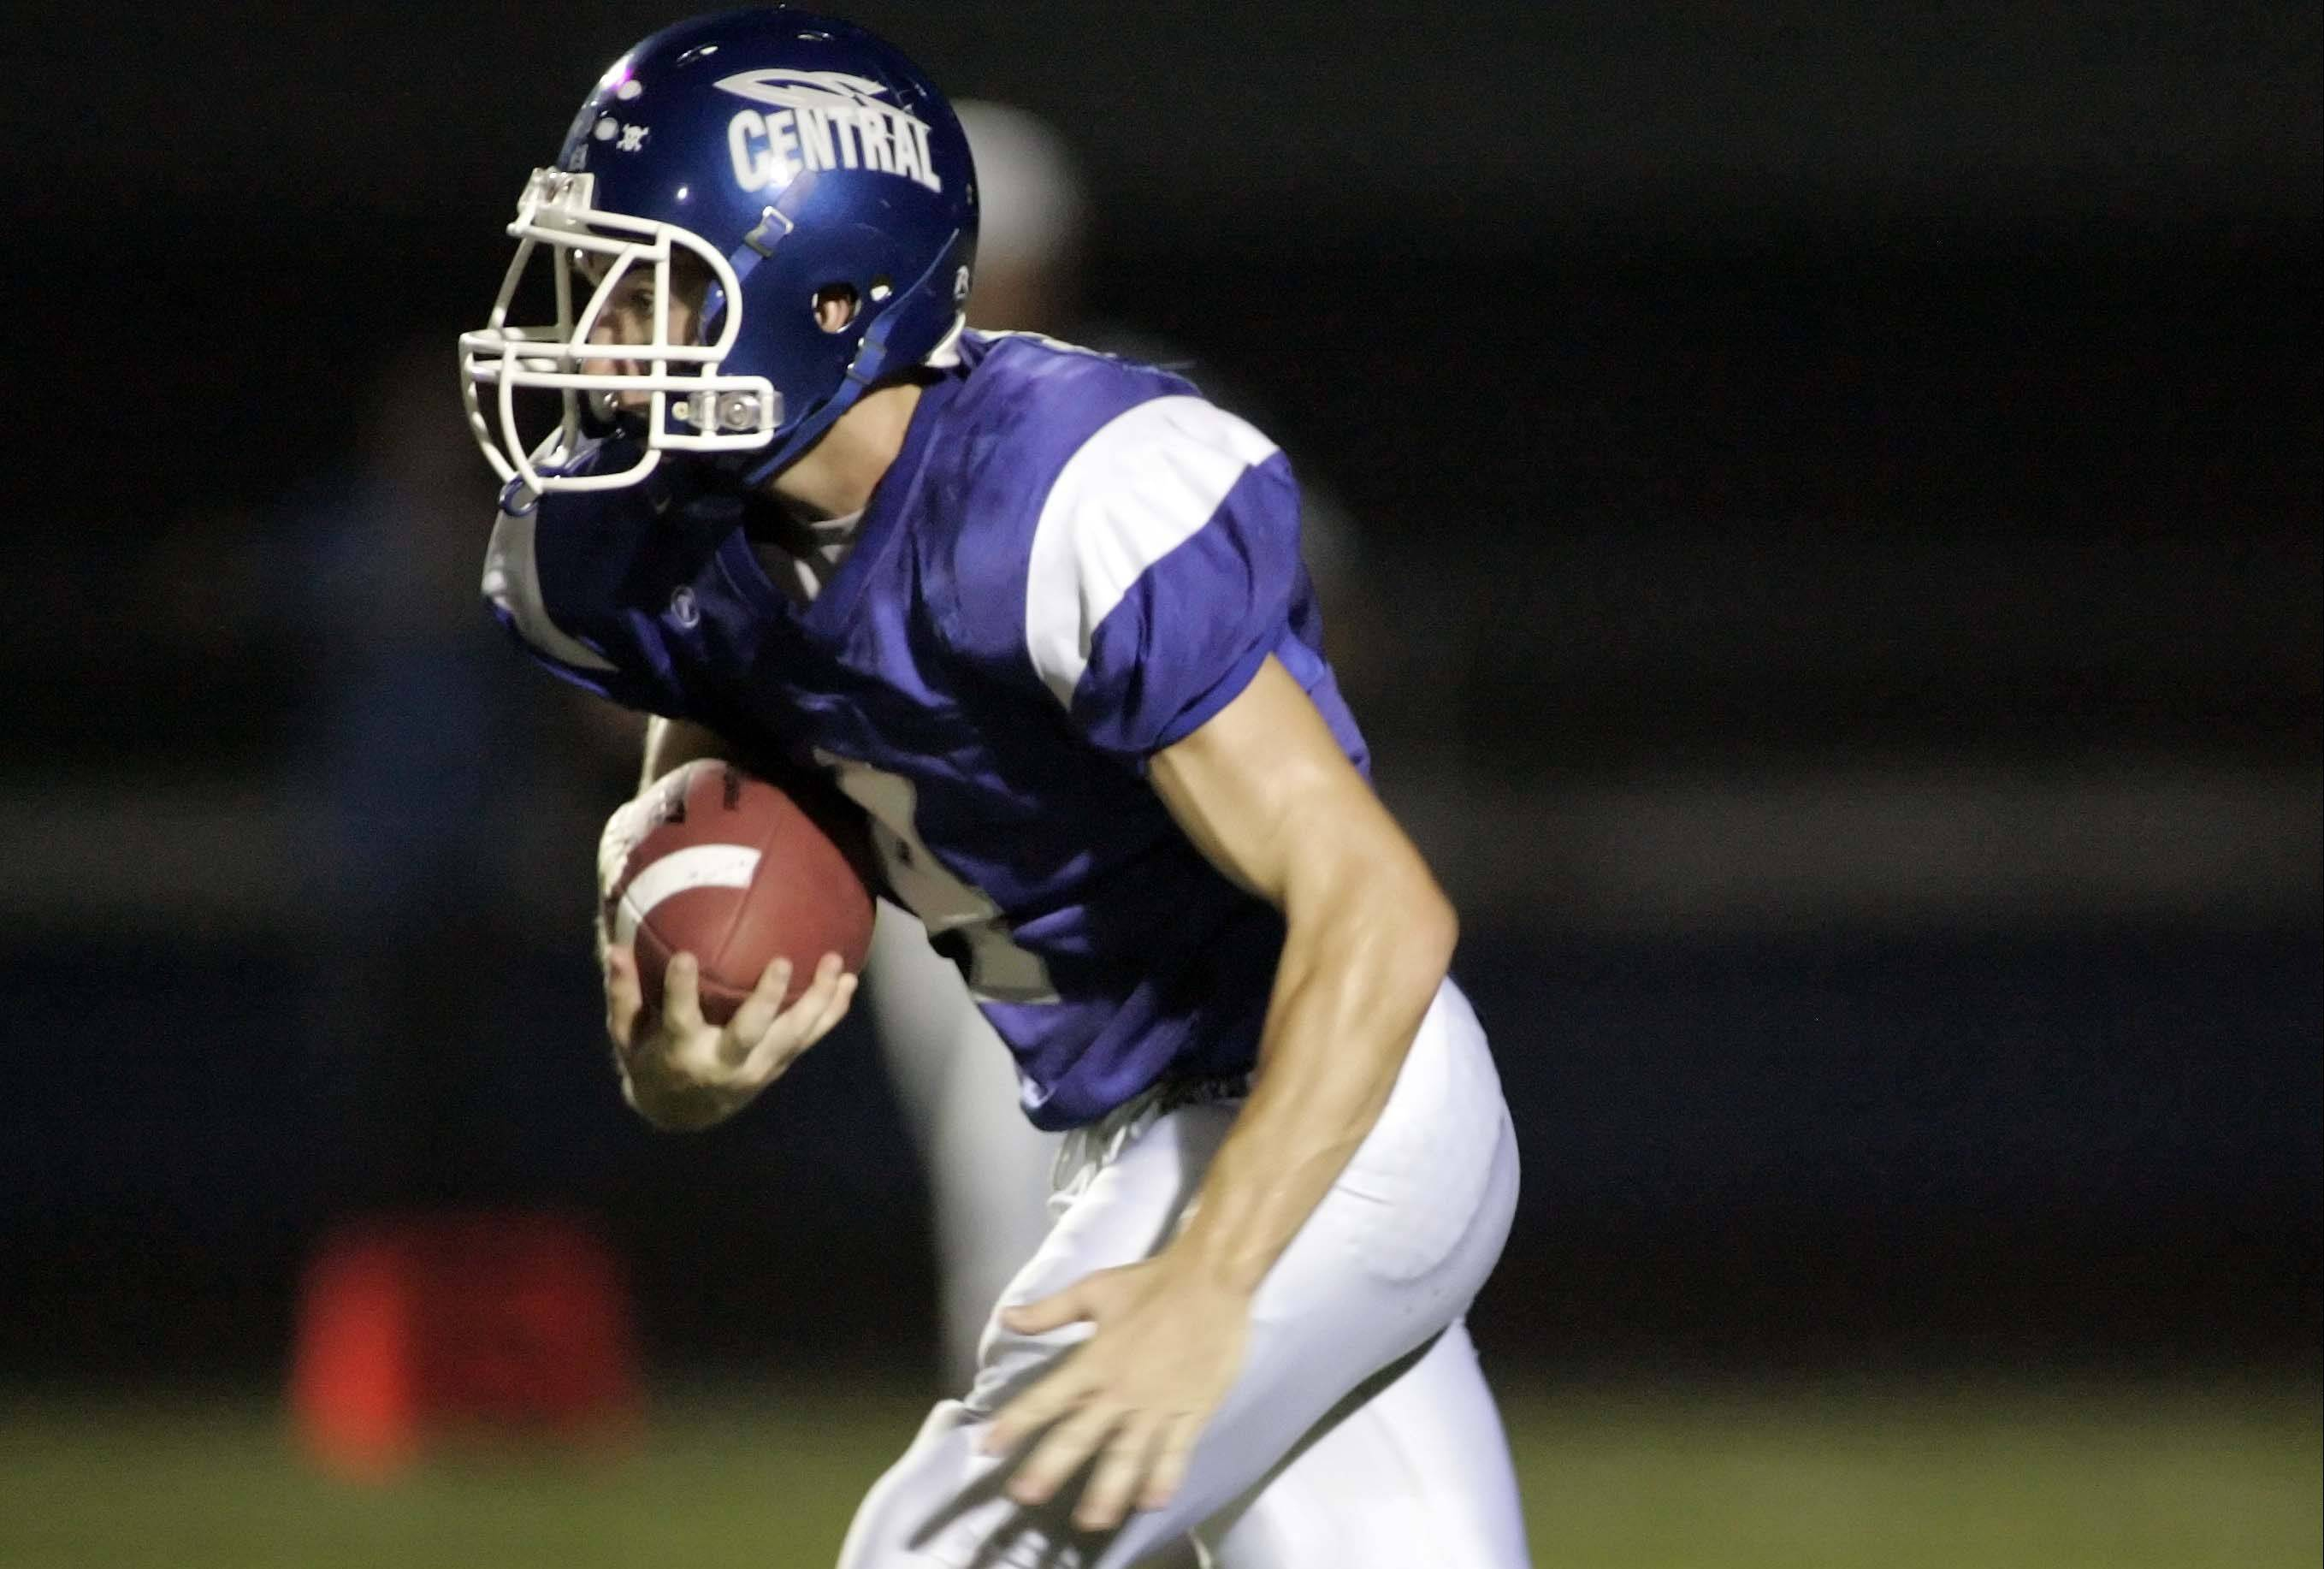 Burlington Central senior wide receiver Joe Breeden possesses breakaway speed.